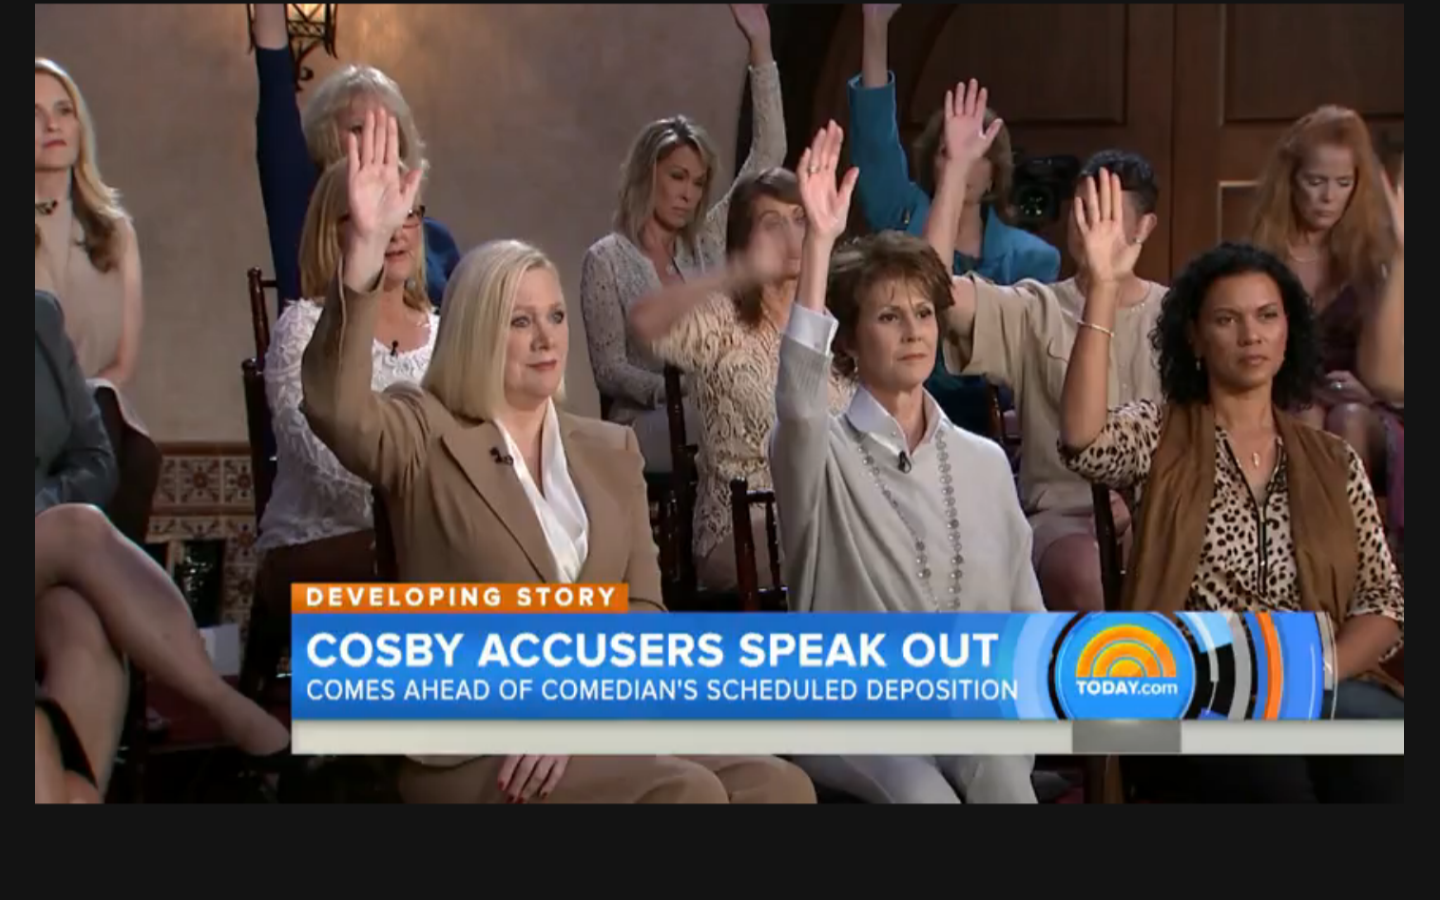 Cosby Accusers on Dateline